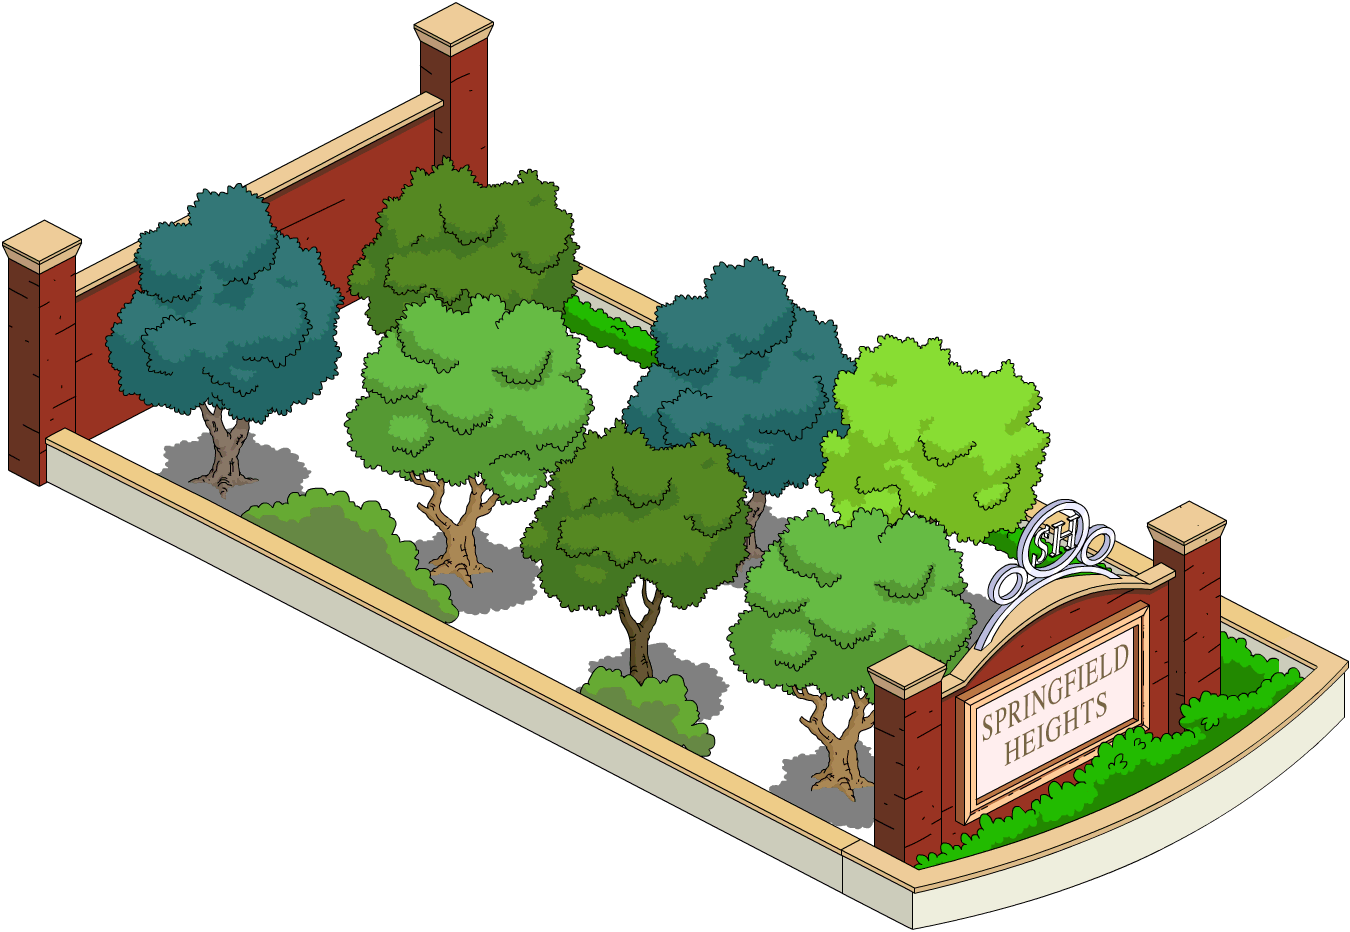 Springfield Heights Entrance.png